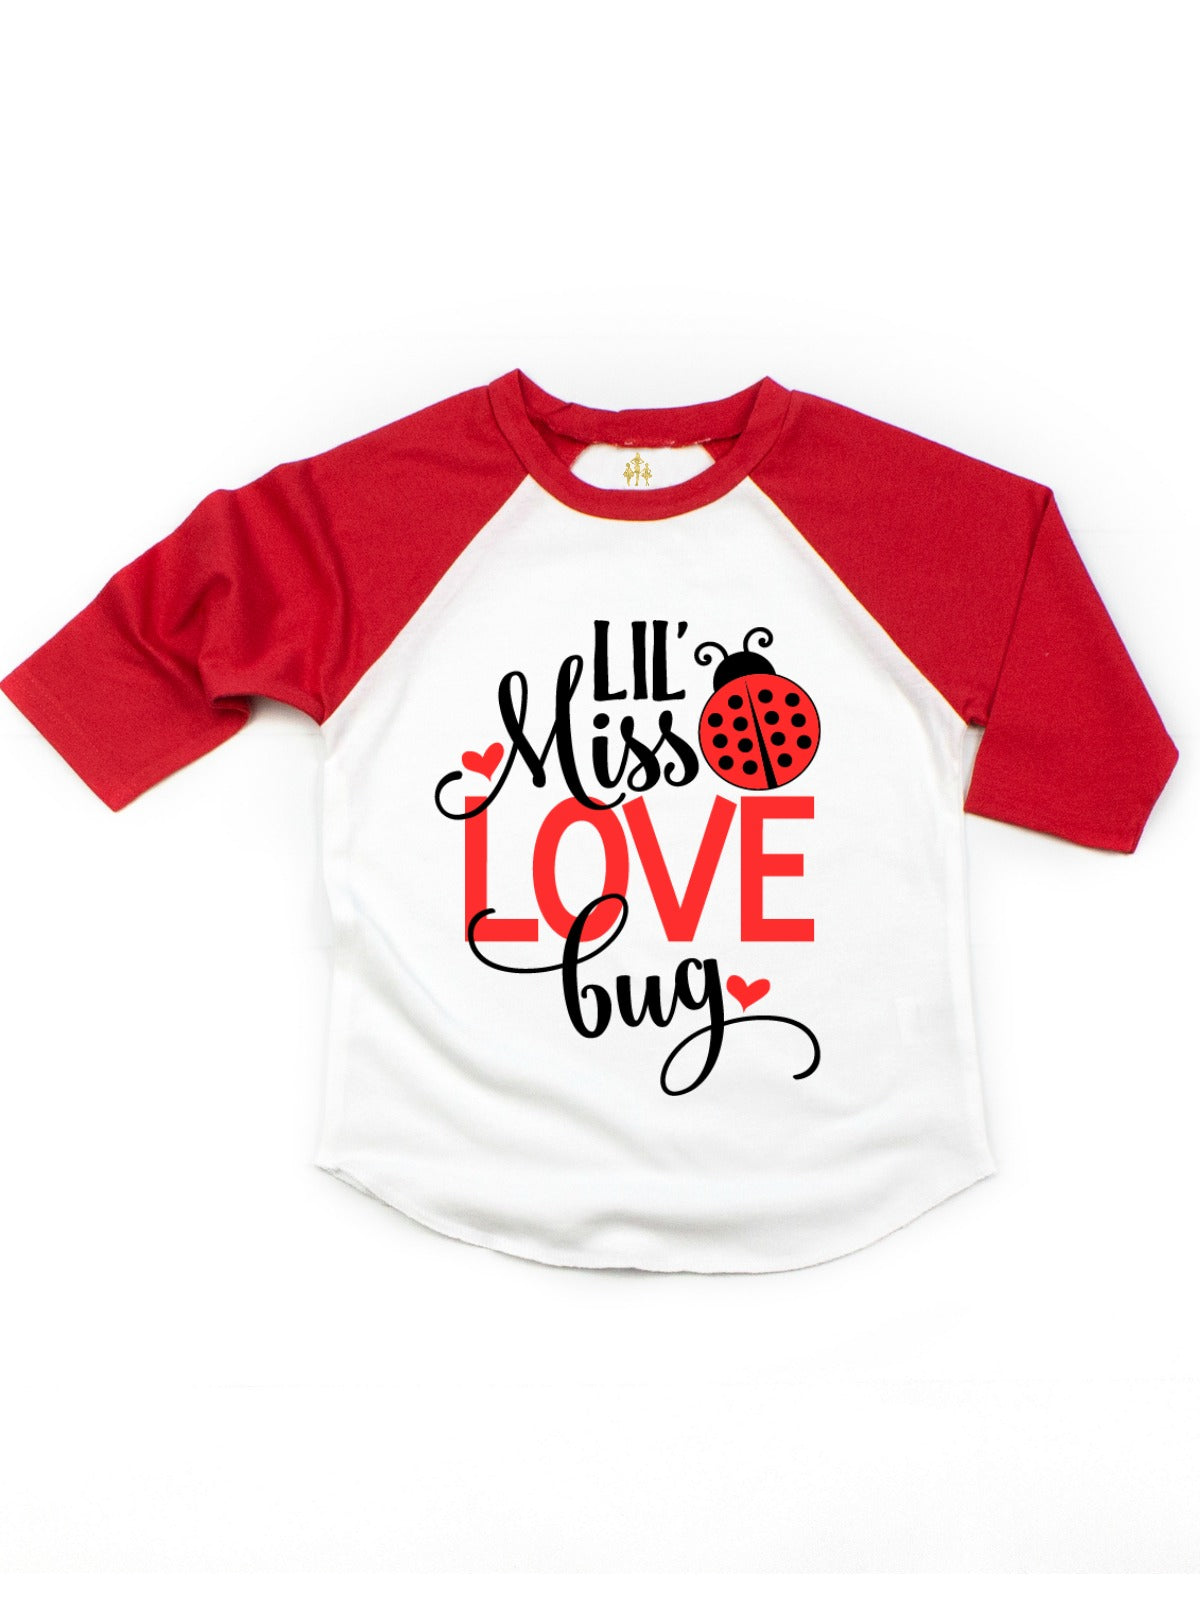 LITTLE FRIEND CUPID Youth T-shirt valentines day funny arrow boys girls kids tee